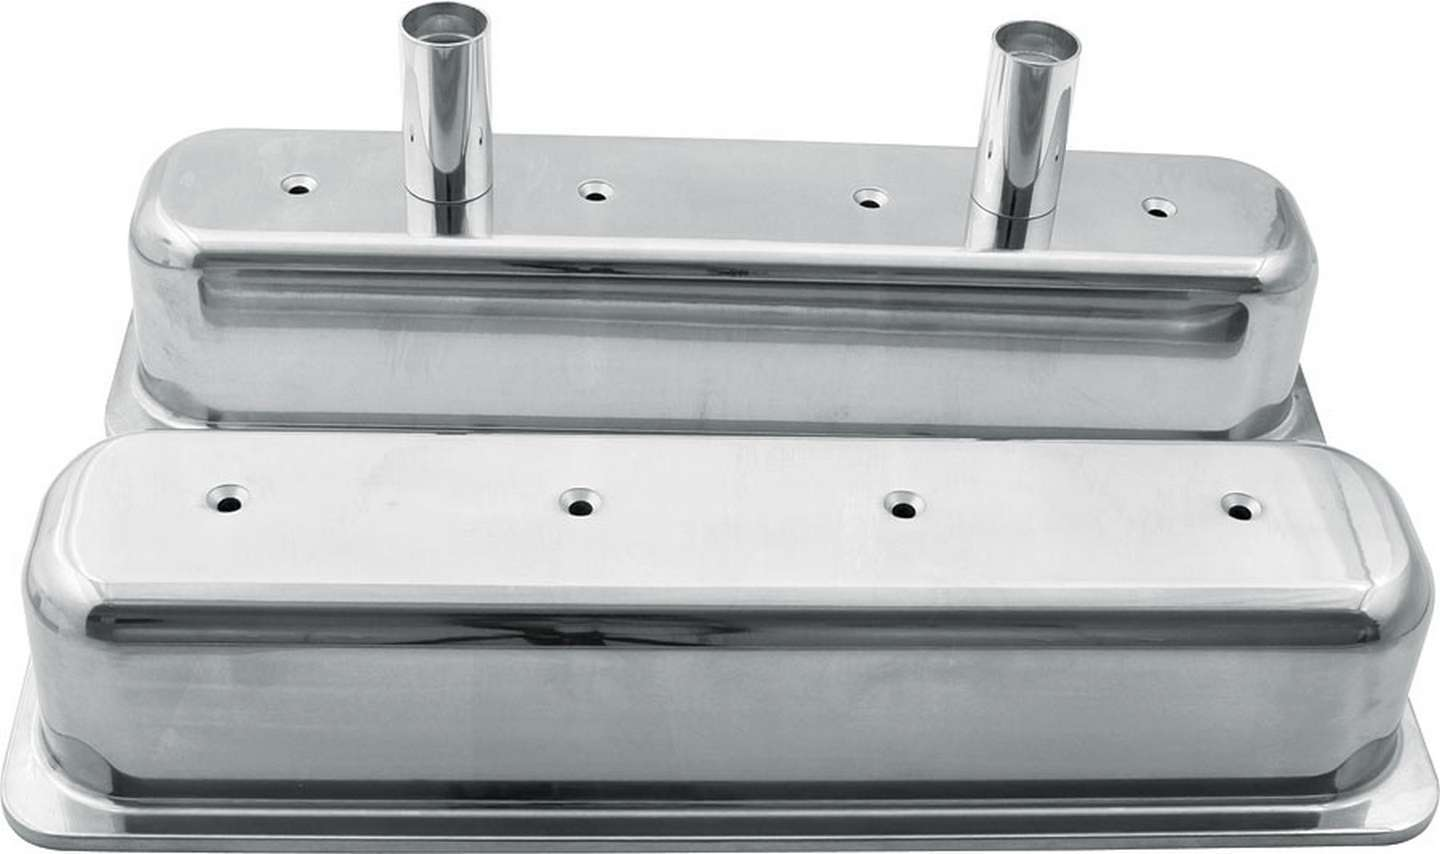 Allstar Performance 26137 Valve Cover, Tall, Breather Tubes, Aluminum, Polished, Center Bolt, Small Block Chevy, Pair